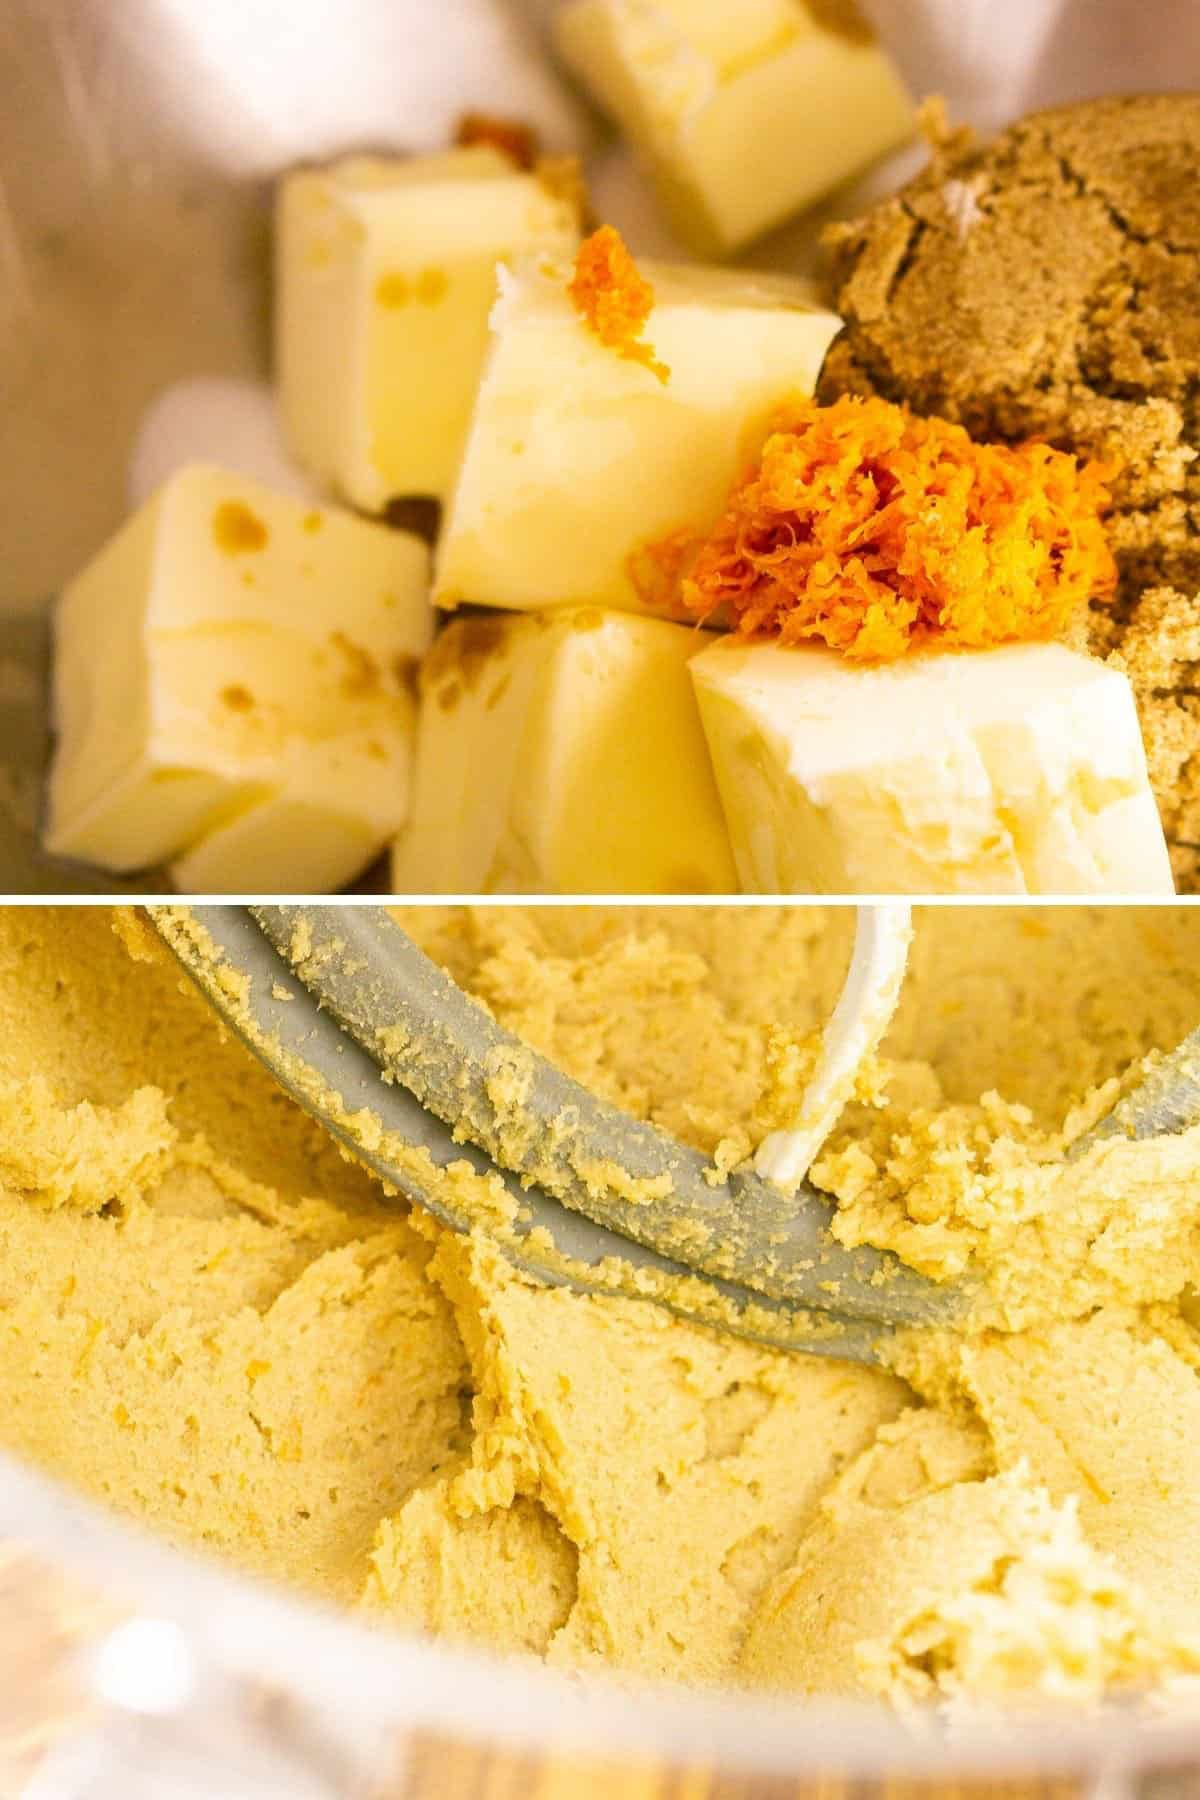 A collage showing the process of creaming together the ingredients until they're light and fluffy in a mixing bowl.